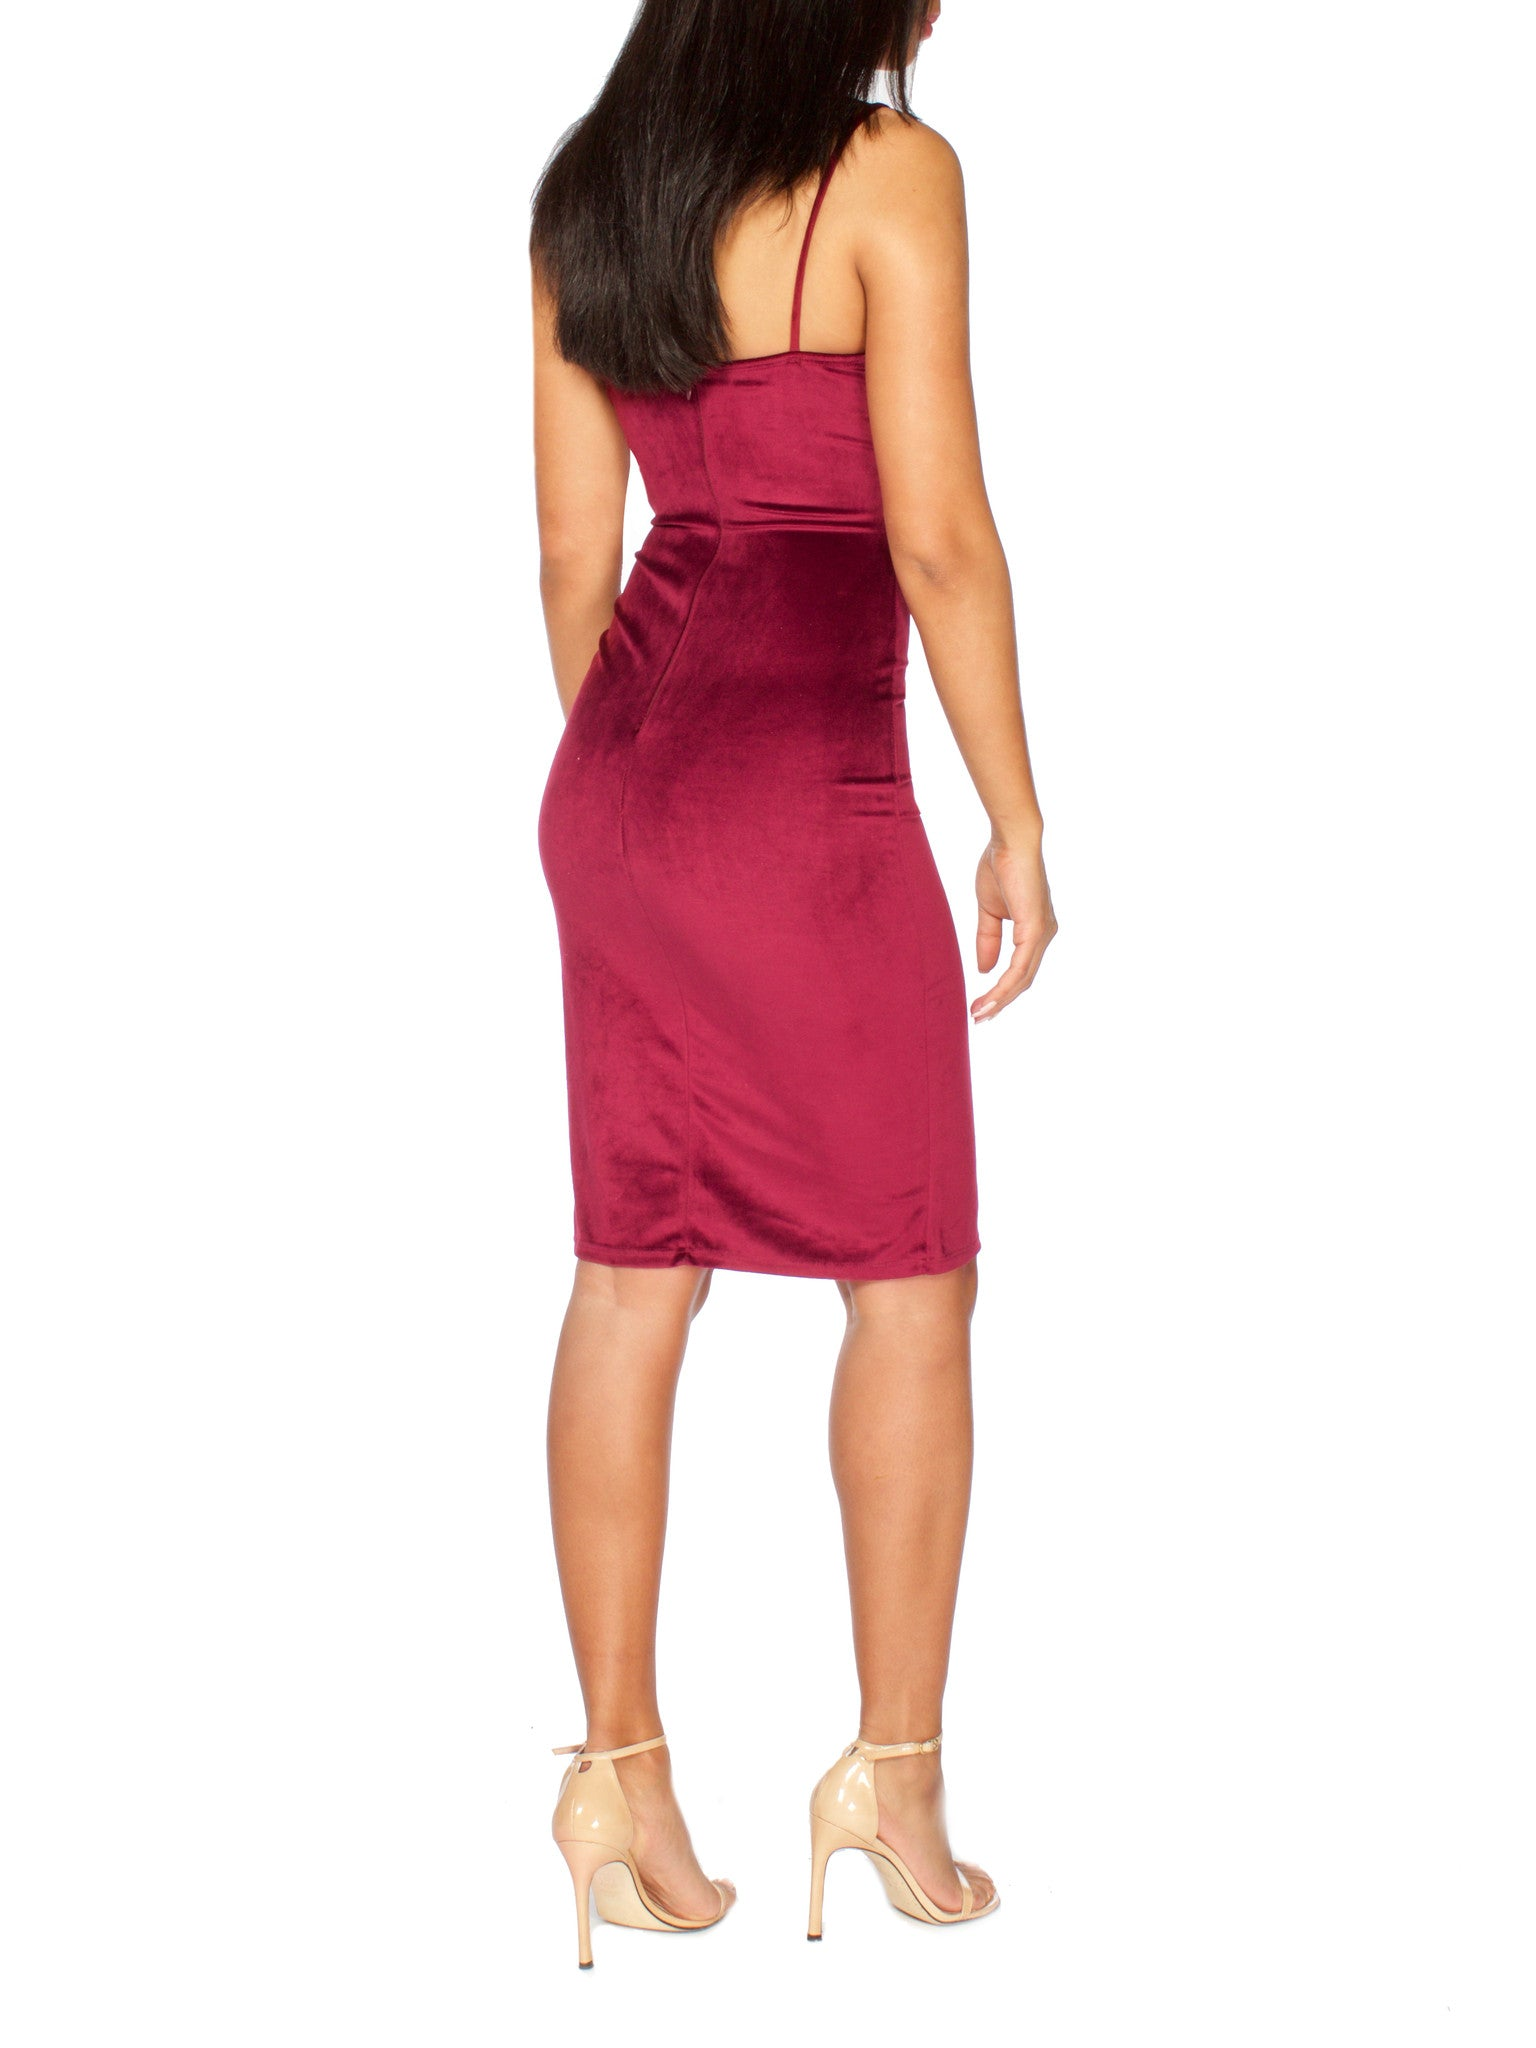 Victoria Plunging Slit Dress - PRADEGAL